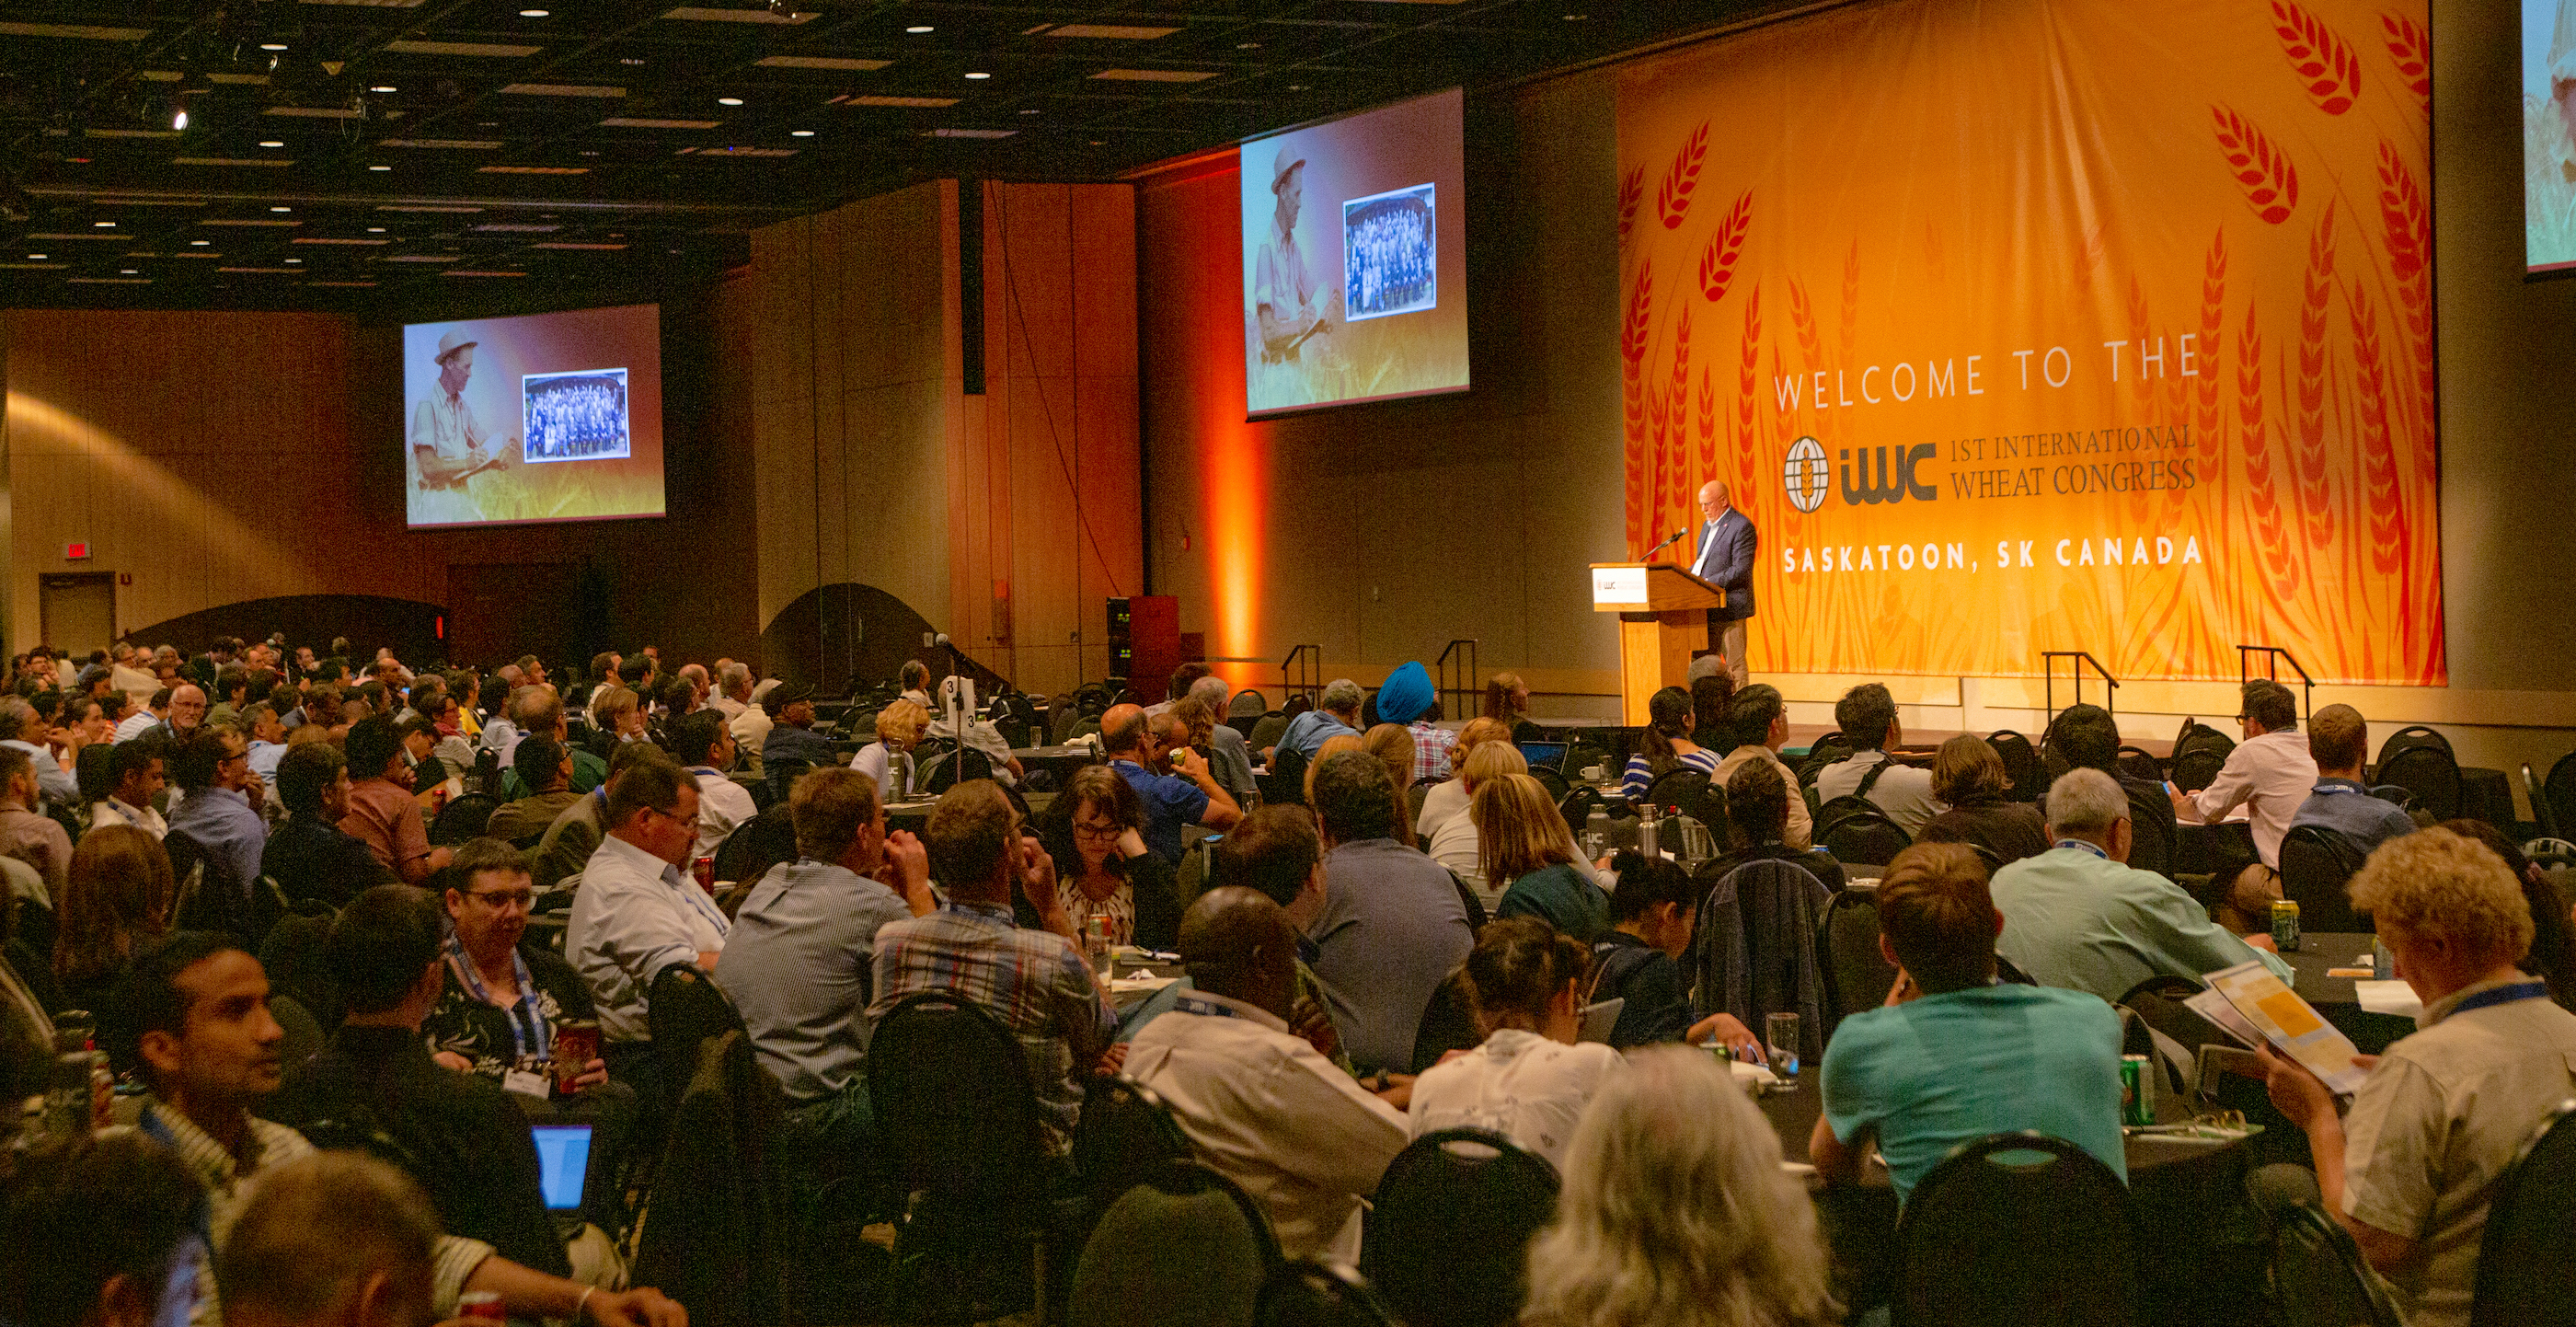 More than 800 global experts gathered at the first International Wheat Congress in Saskatoon, Canada, to strategize on ways to meet projected nutritional needs of 60% more people by 2050. (Photo: Matthew Hayes/Cornell University)